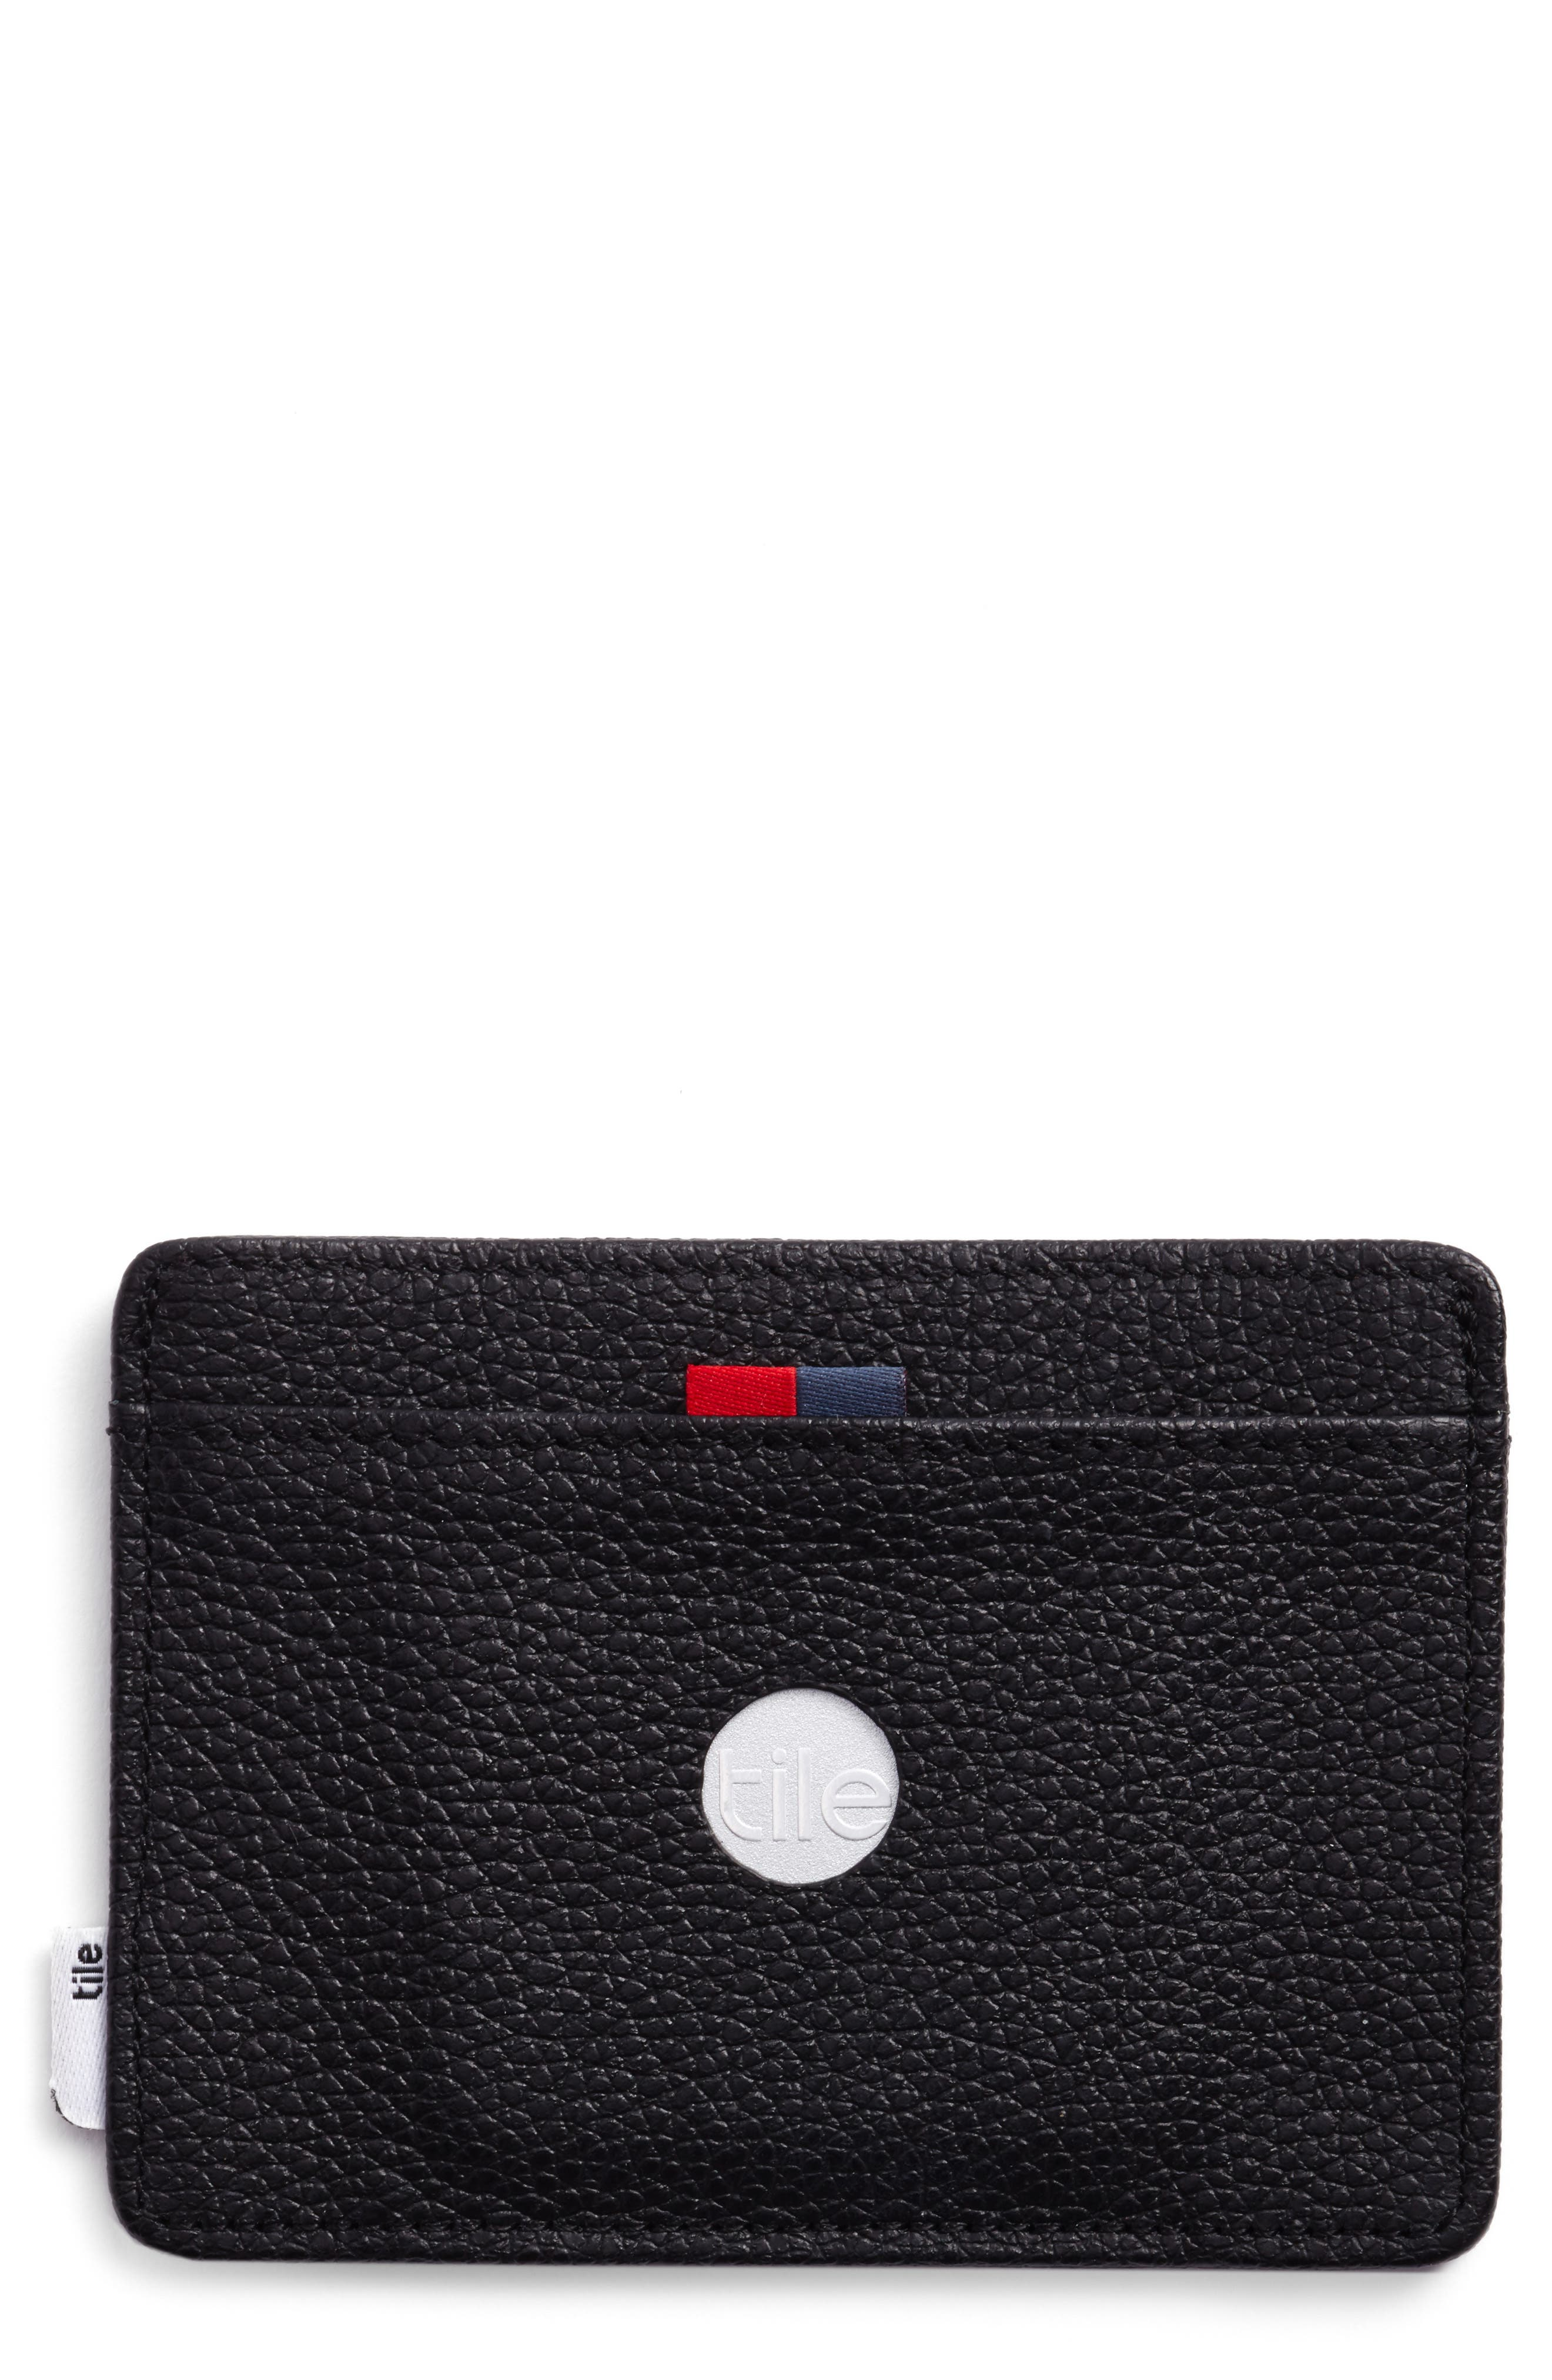 Herschel Supply Co. Tile Slim Charlie Leather Card Case